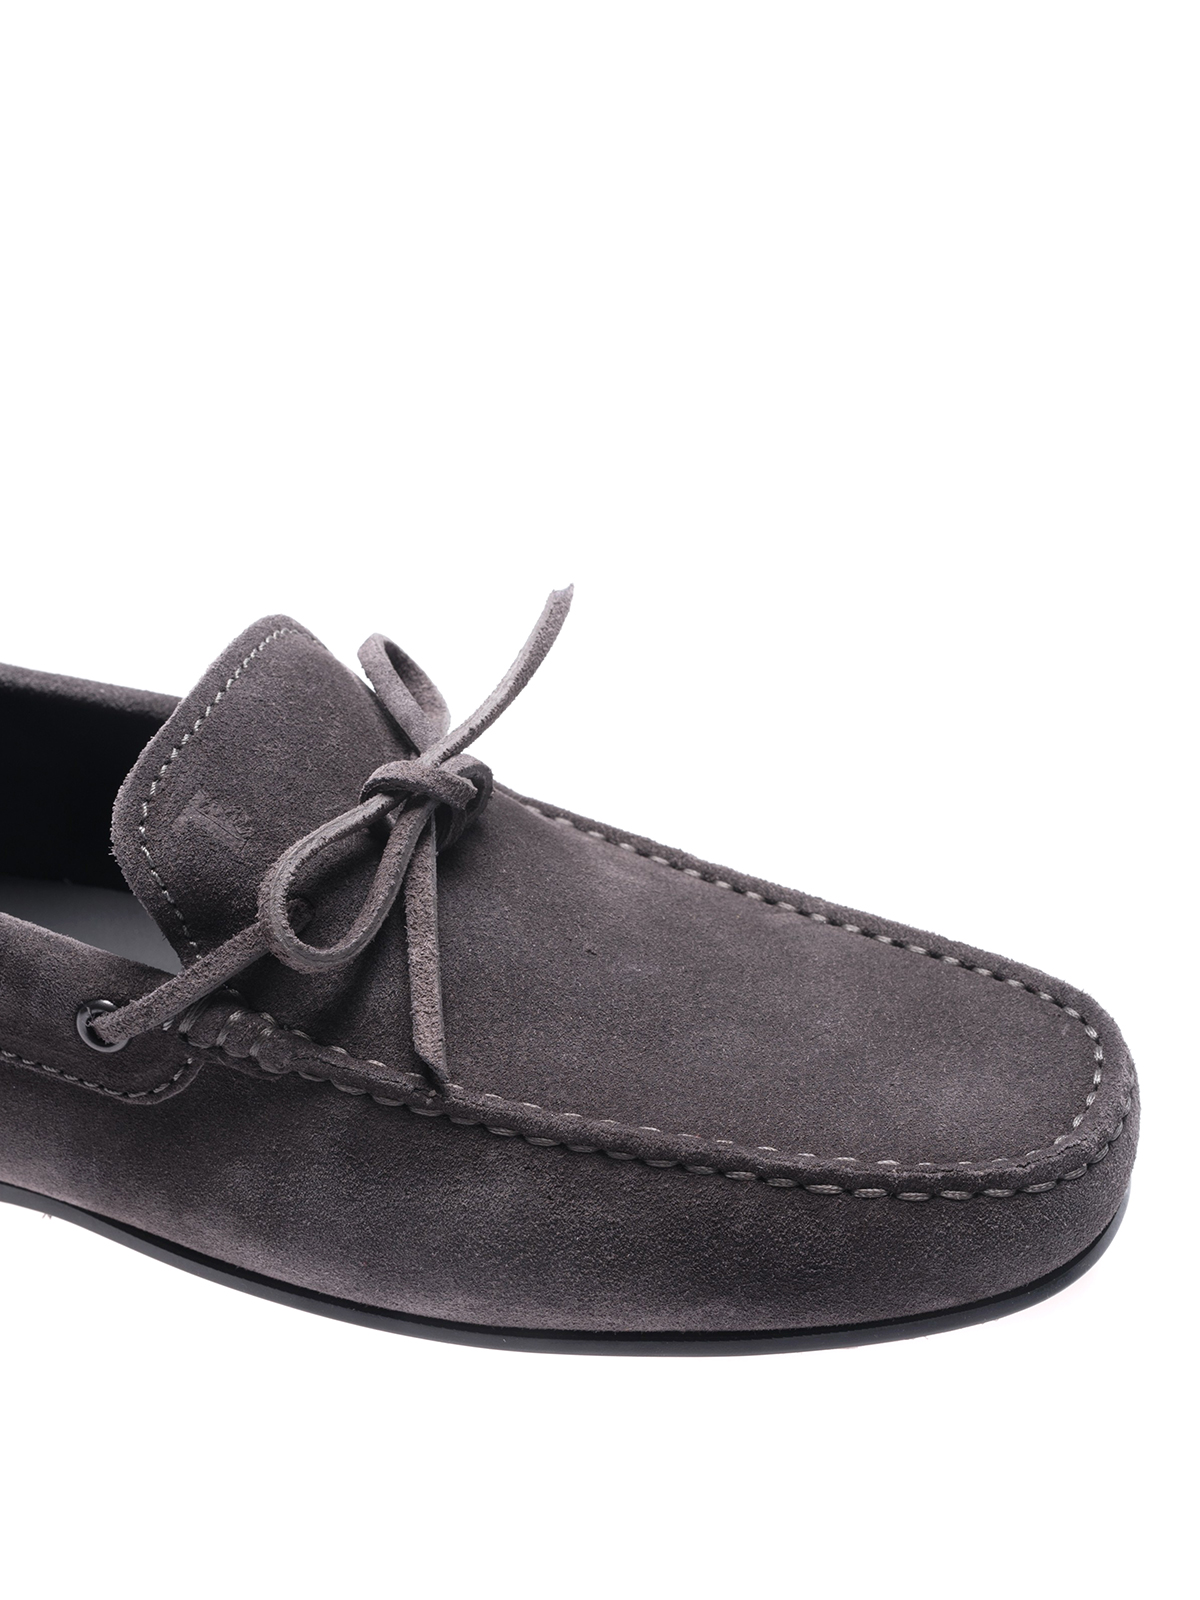 b06962a6327 Tod S - City Gommino ash grey suede loafers - Loafers   Slippers ...